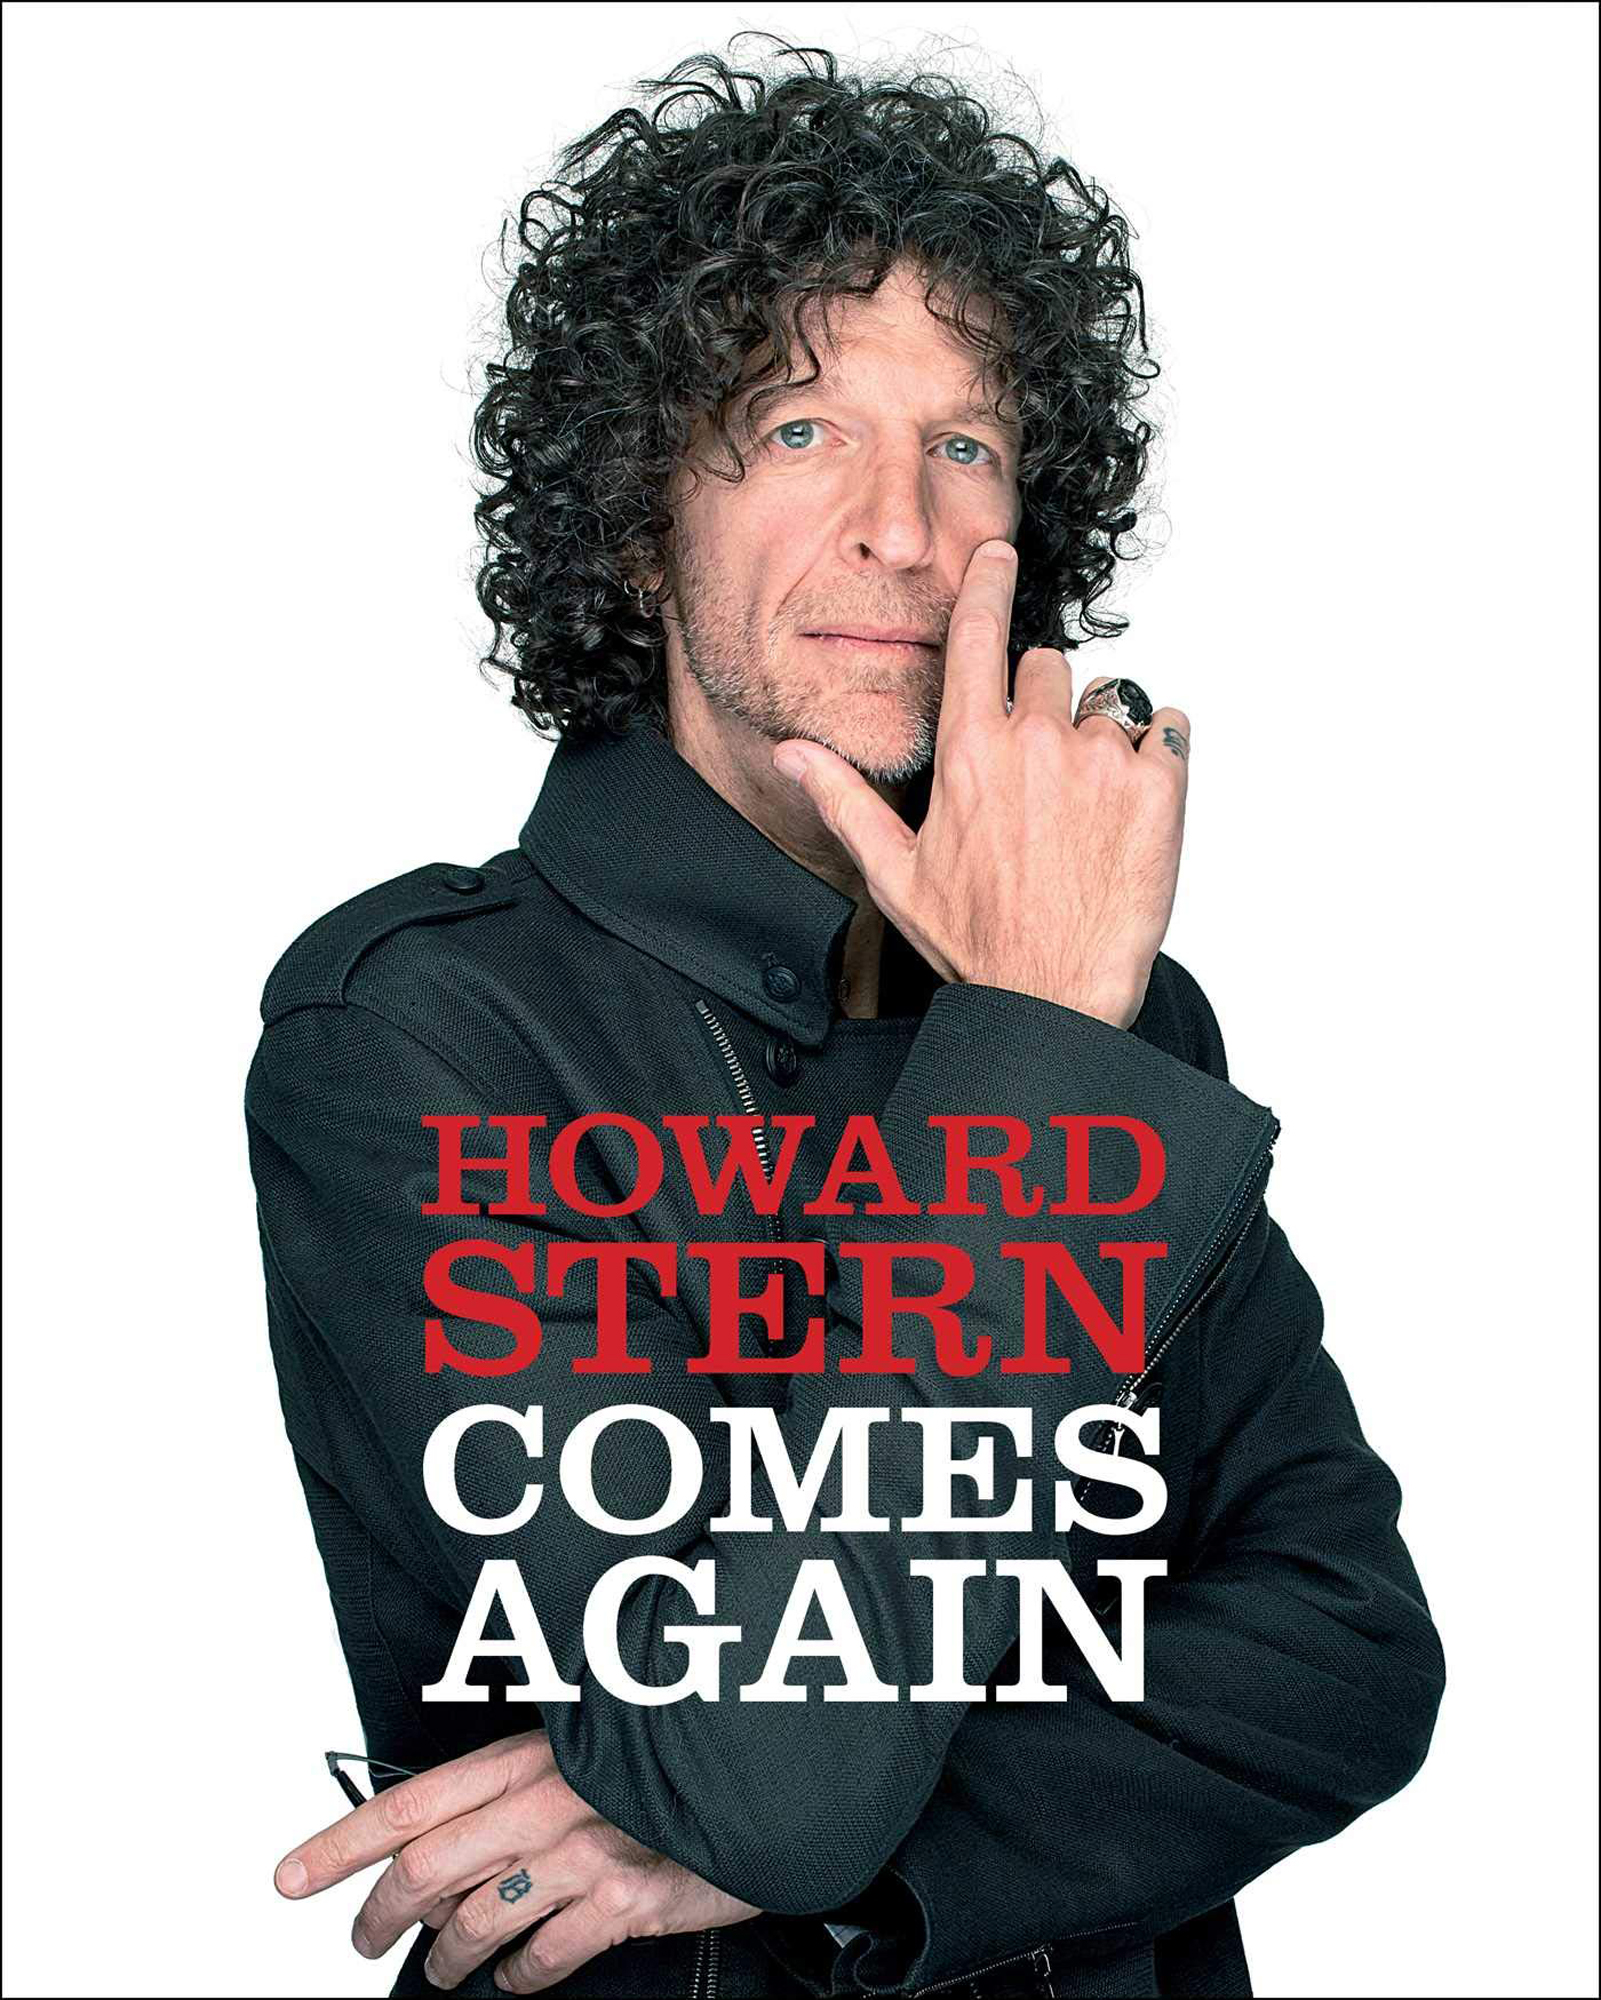 howard-stern-comes-again-1-2000